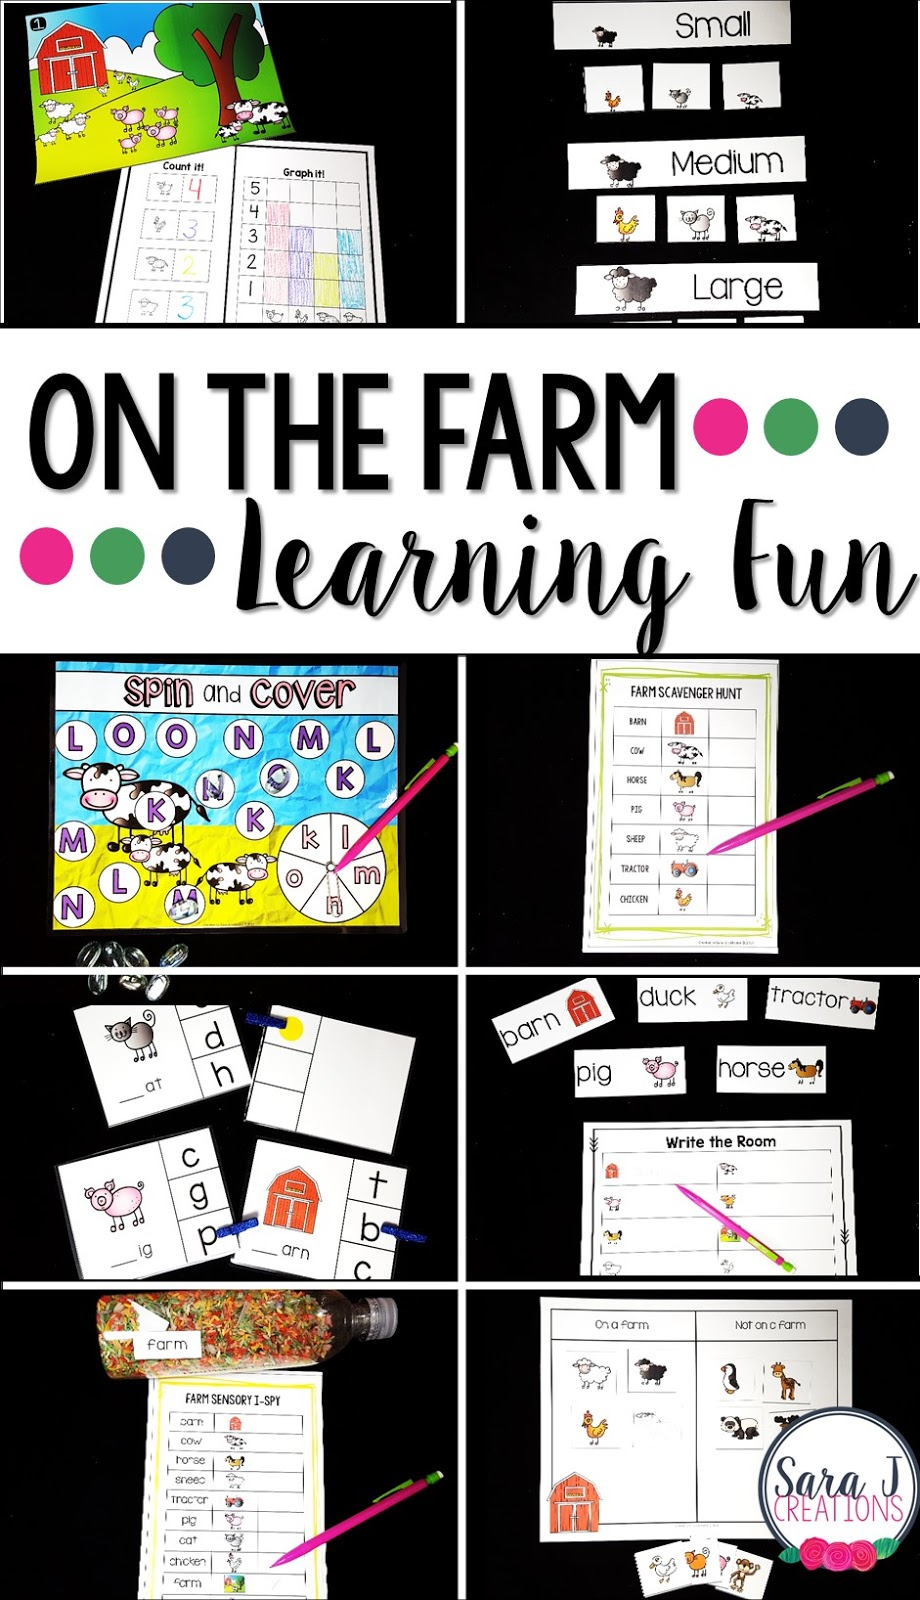 Farm preschool unit with hands on math, literacy and sensory learning fun!